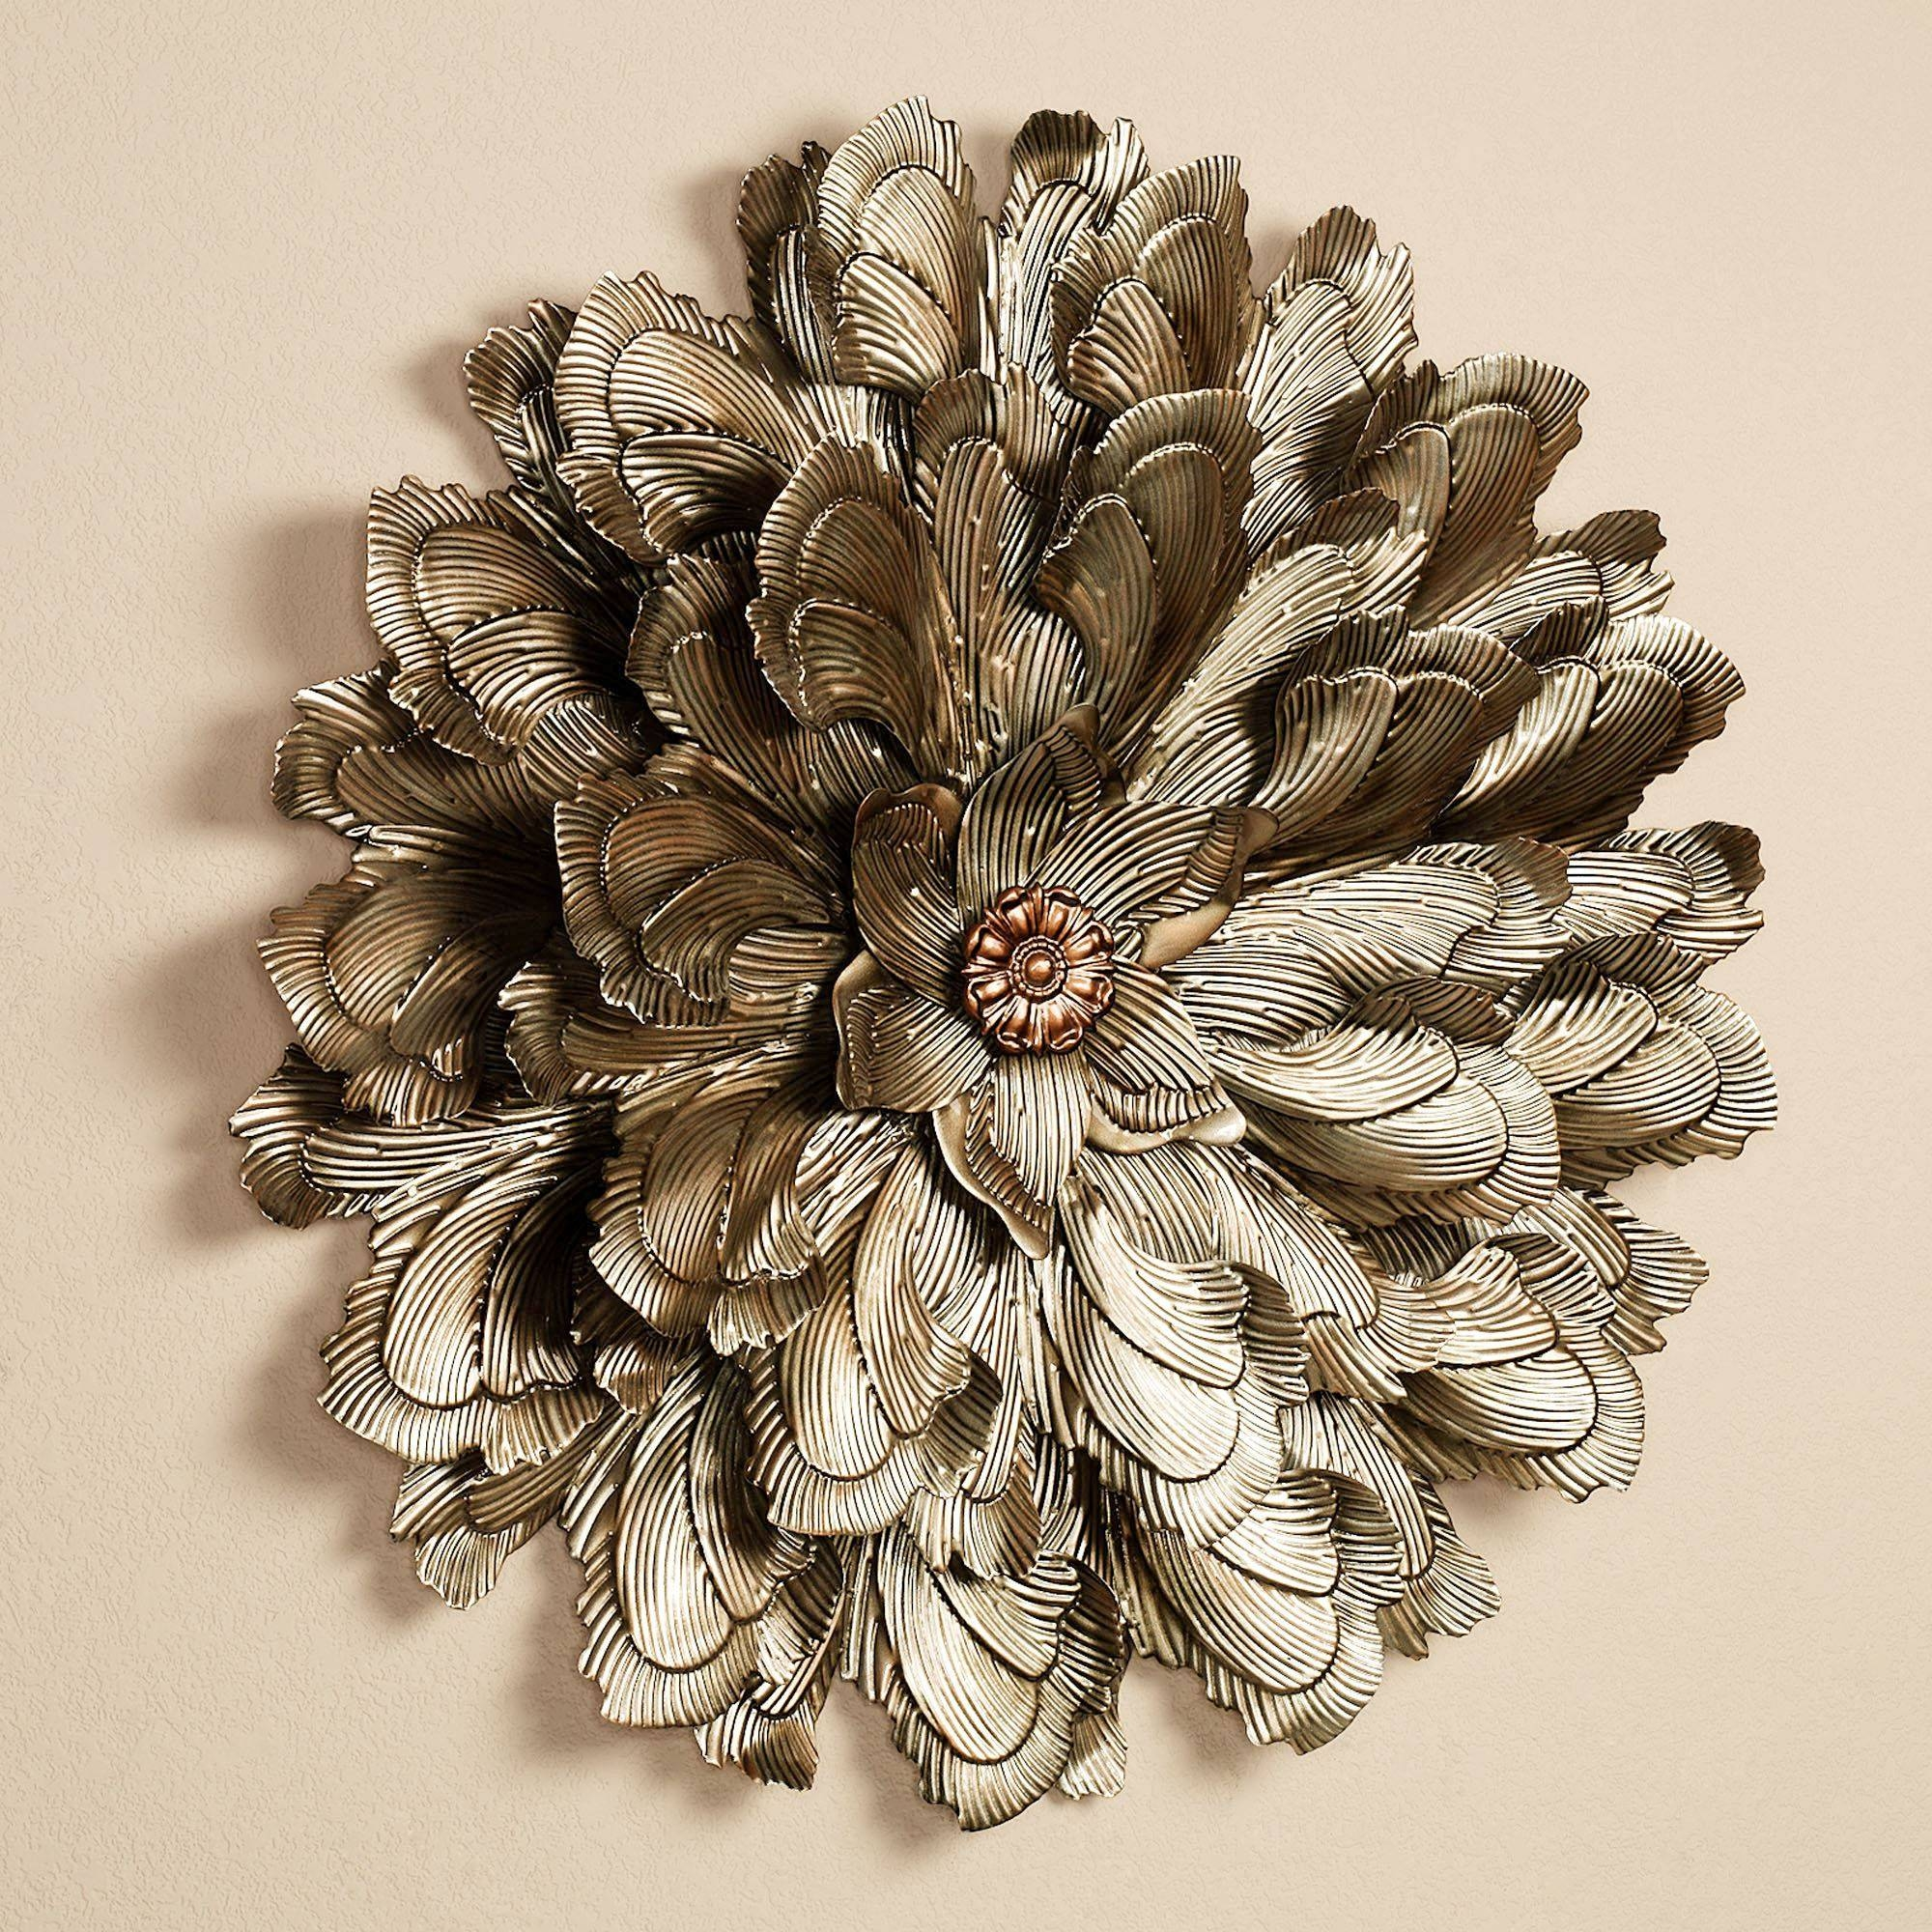 Delicate Flower Blossom Metal Wall Sculpture Regarding Current Flower Metal Wall Art Decor (View 5 of 20)